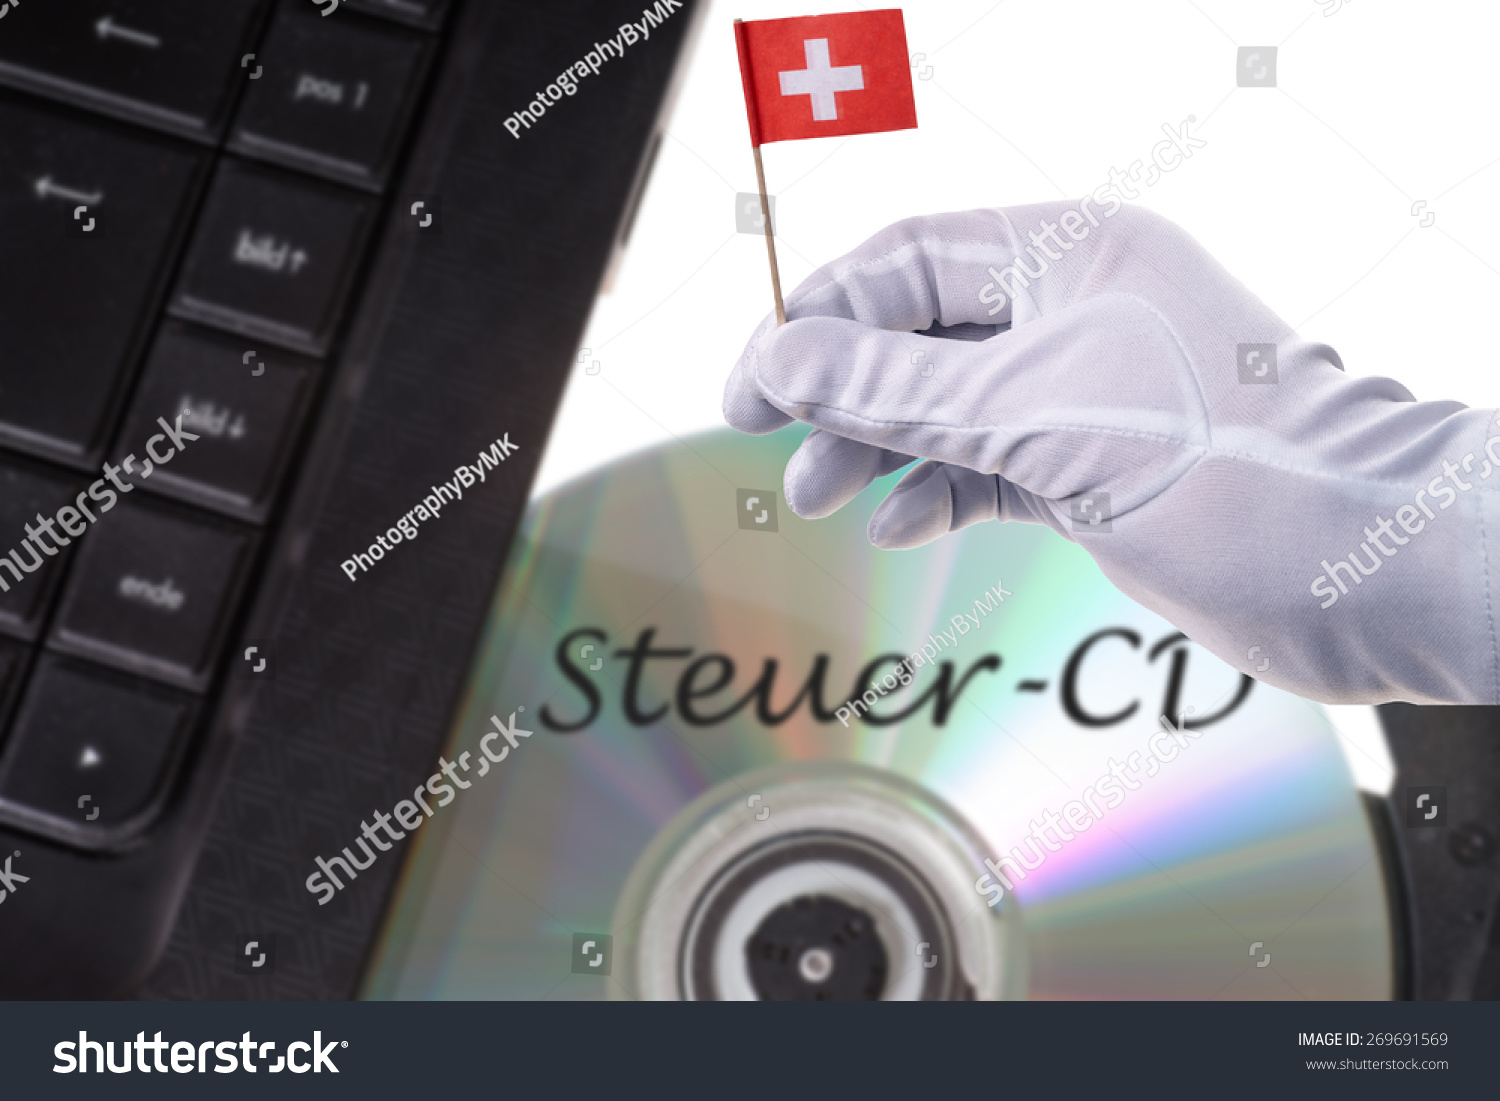 How are stock options taxed in switzerland